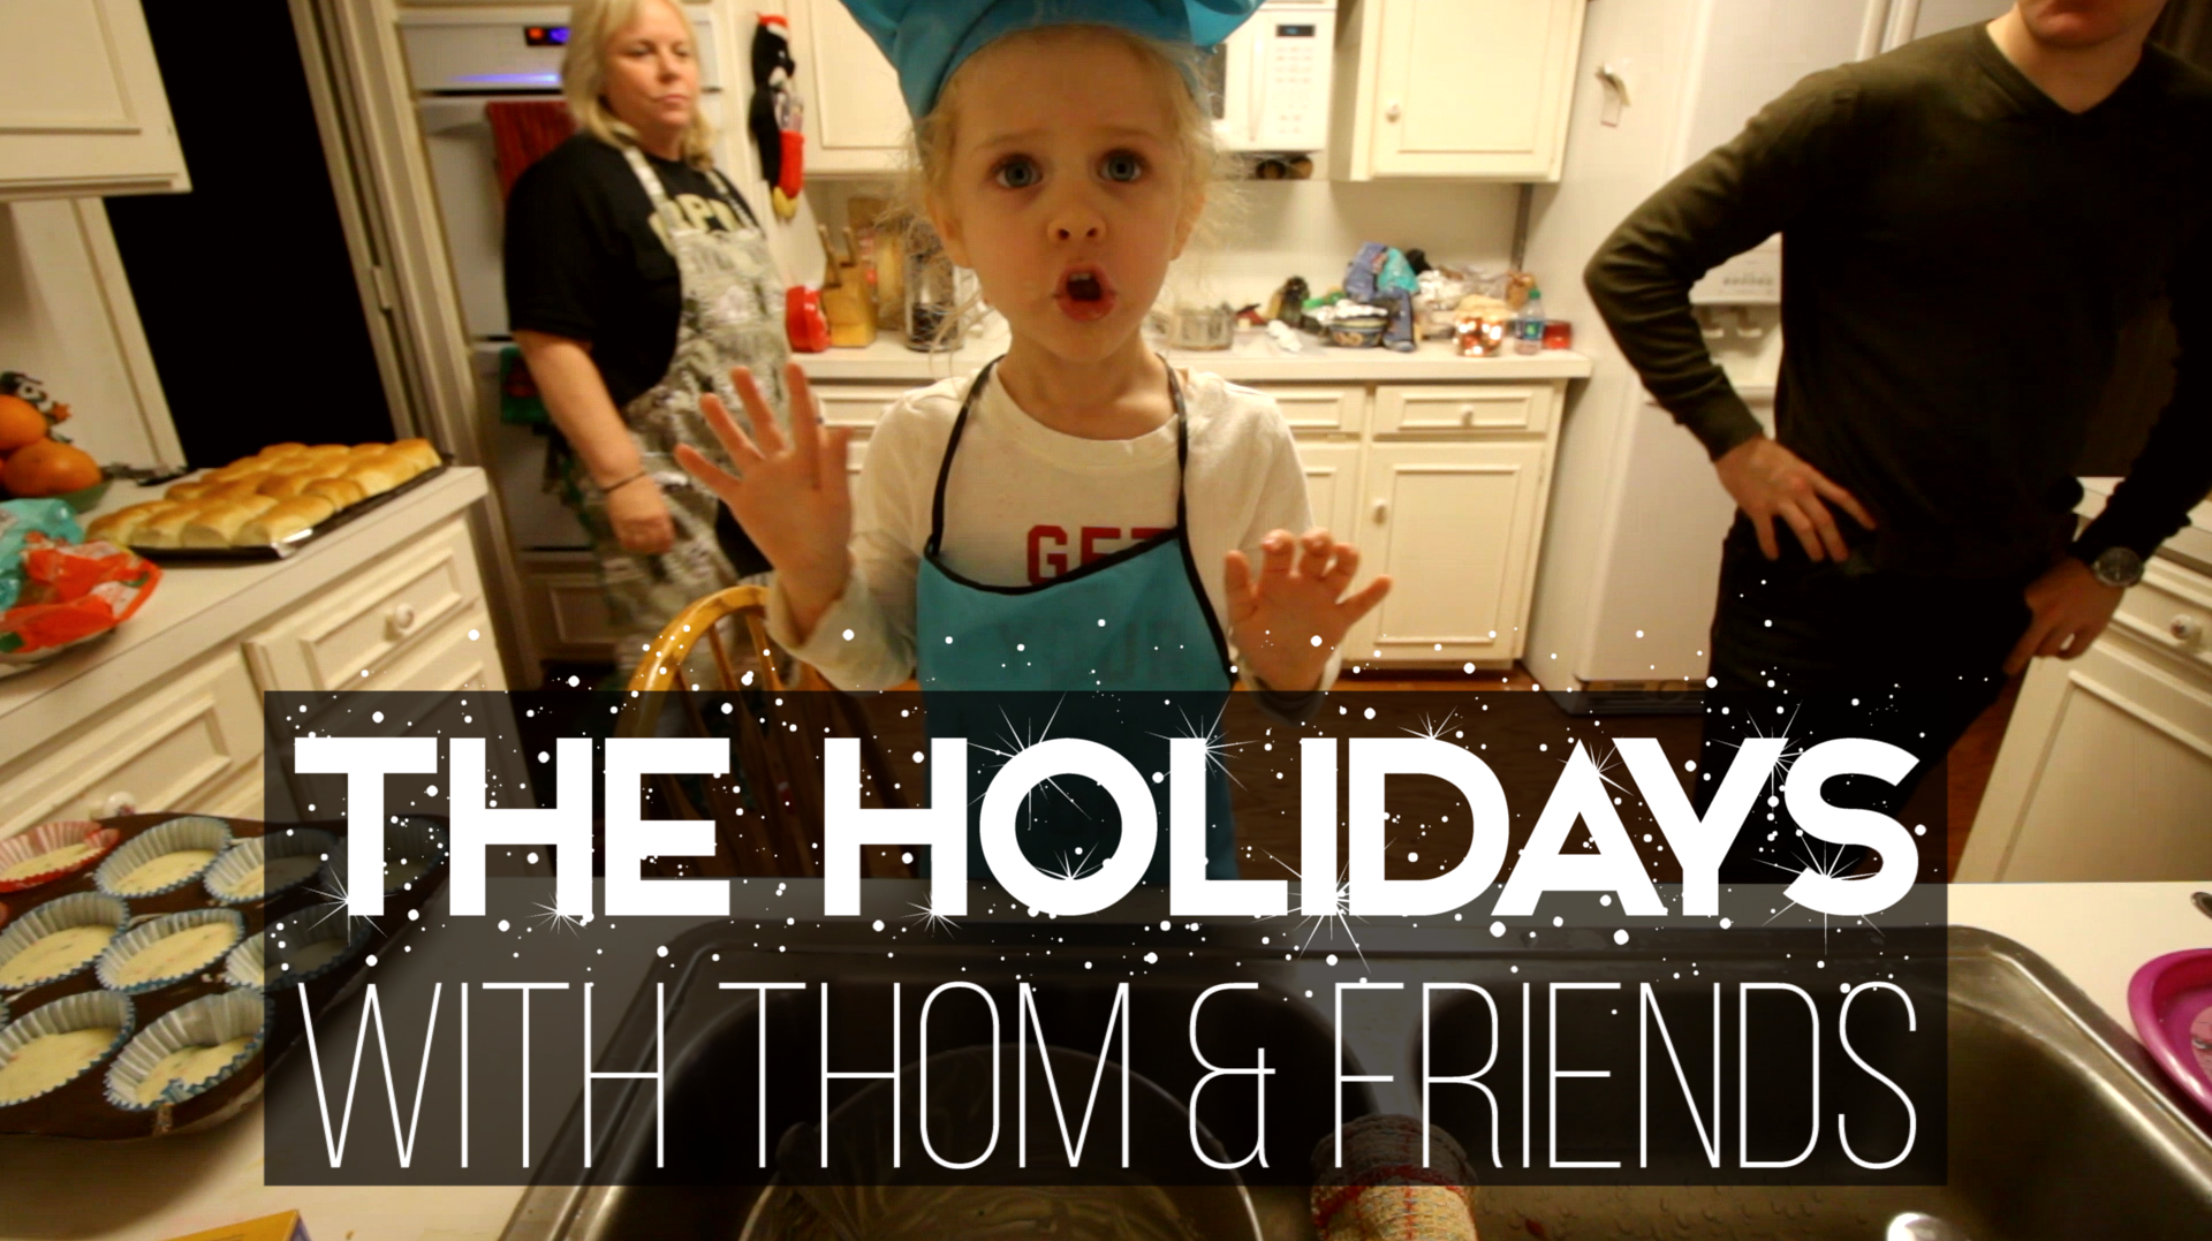 Holidays with Thom & Friends!